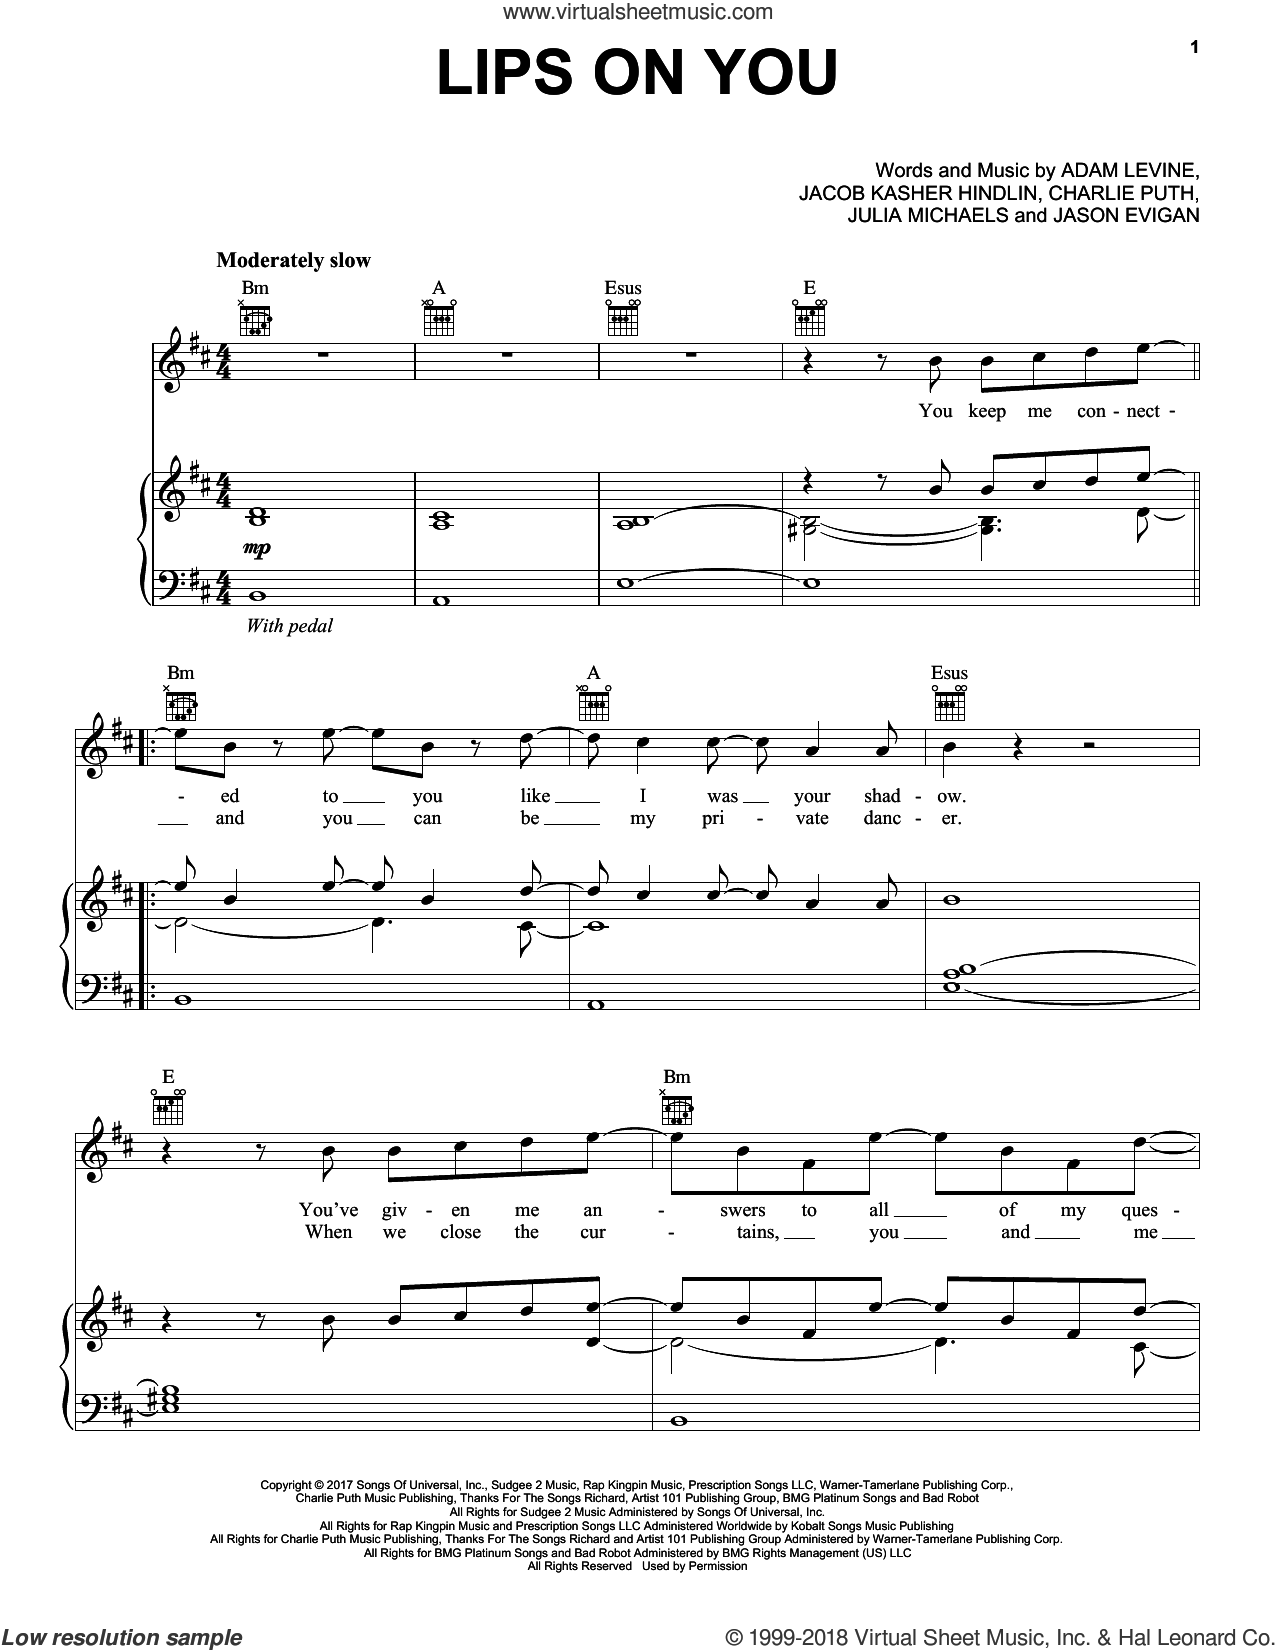 Lips On You sheet music for voice, piano or guitar by Maroon 5, Adam Levine, Charlie Puth, Jacob Kasher Hindlin, Jason Evigan and Julia Michaels, intermediate skill level